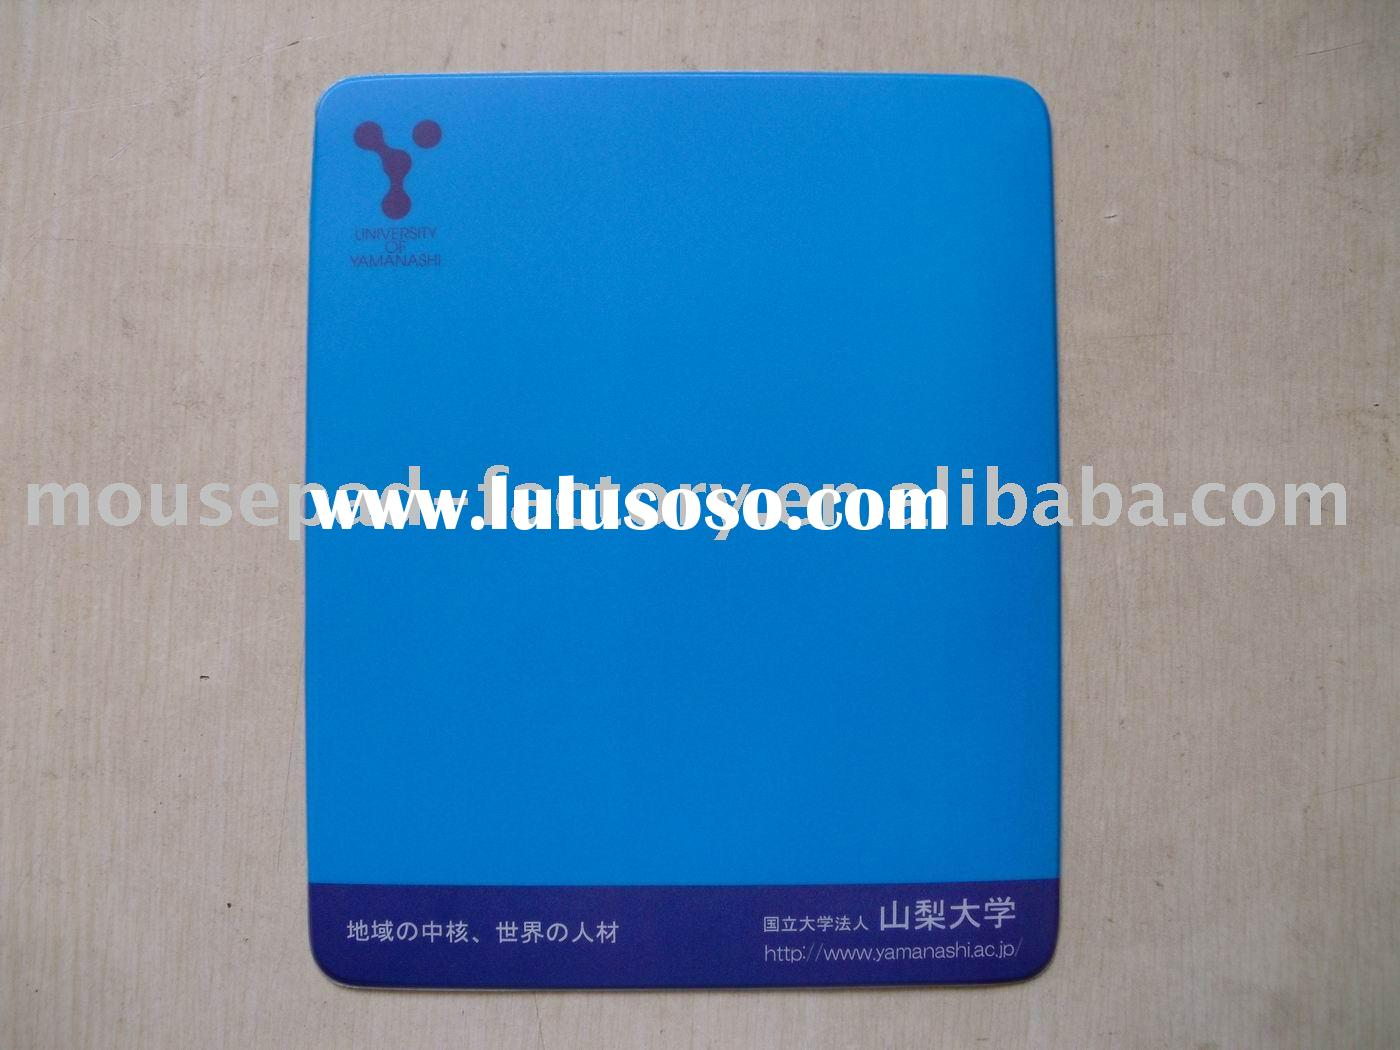 Writing mat, writing board mouse pad